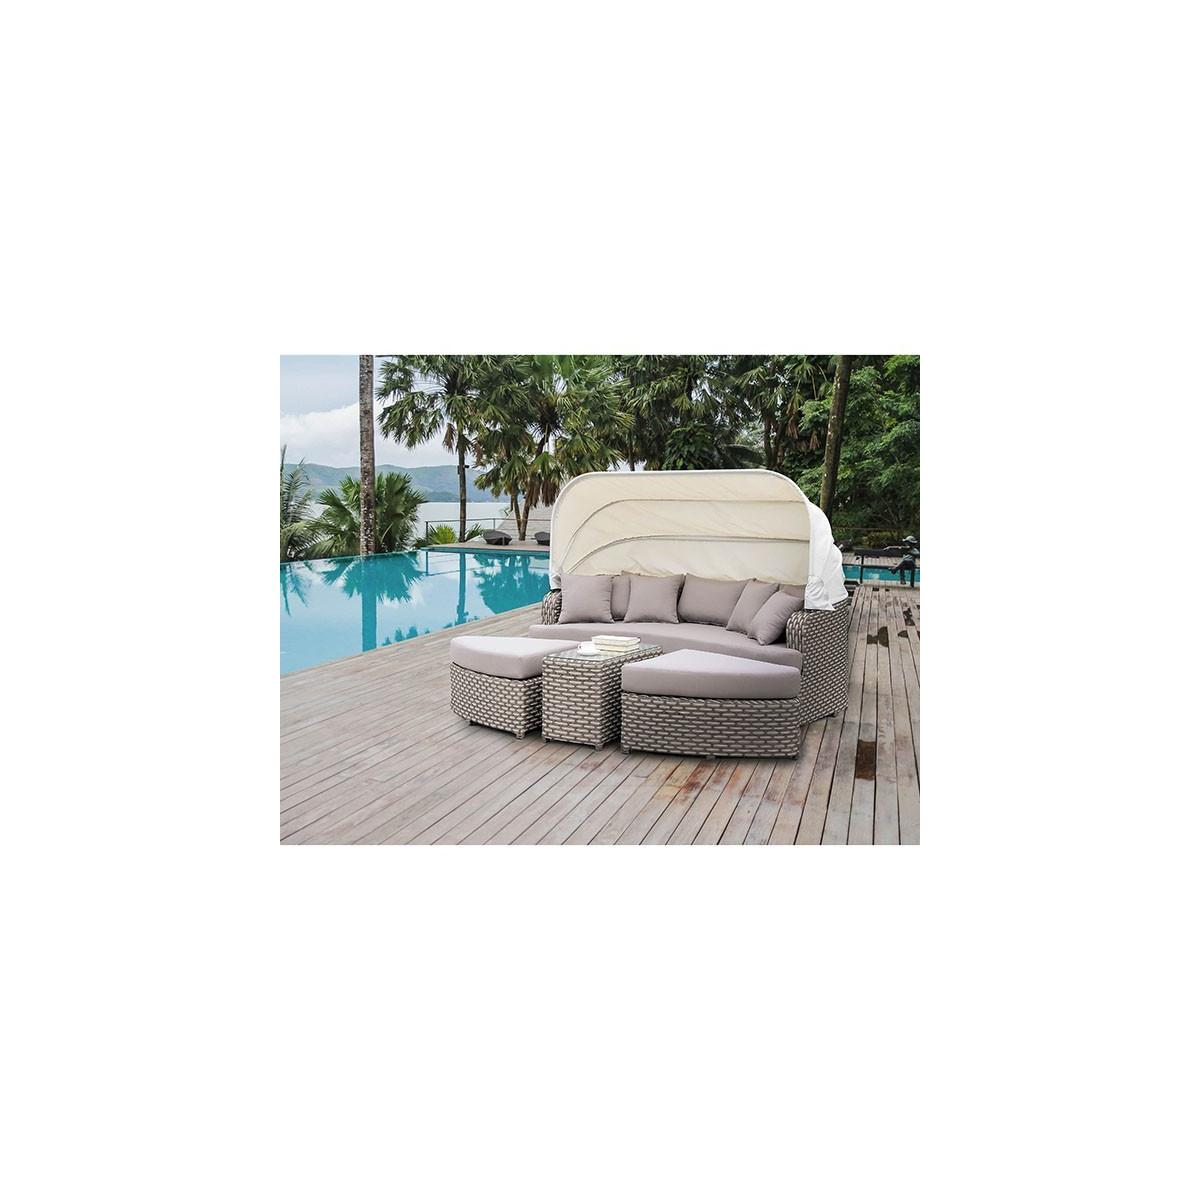 Riya 4pc. Patio Daybed